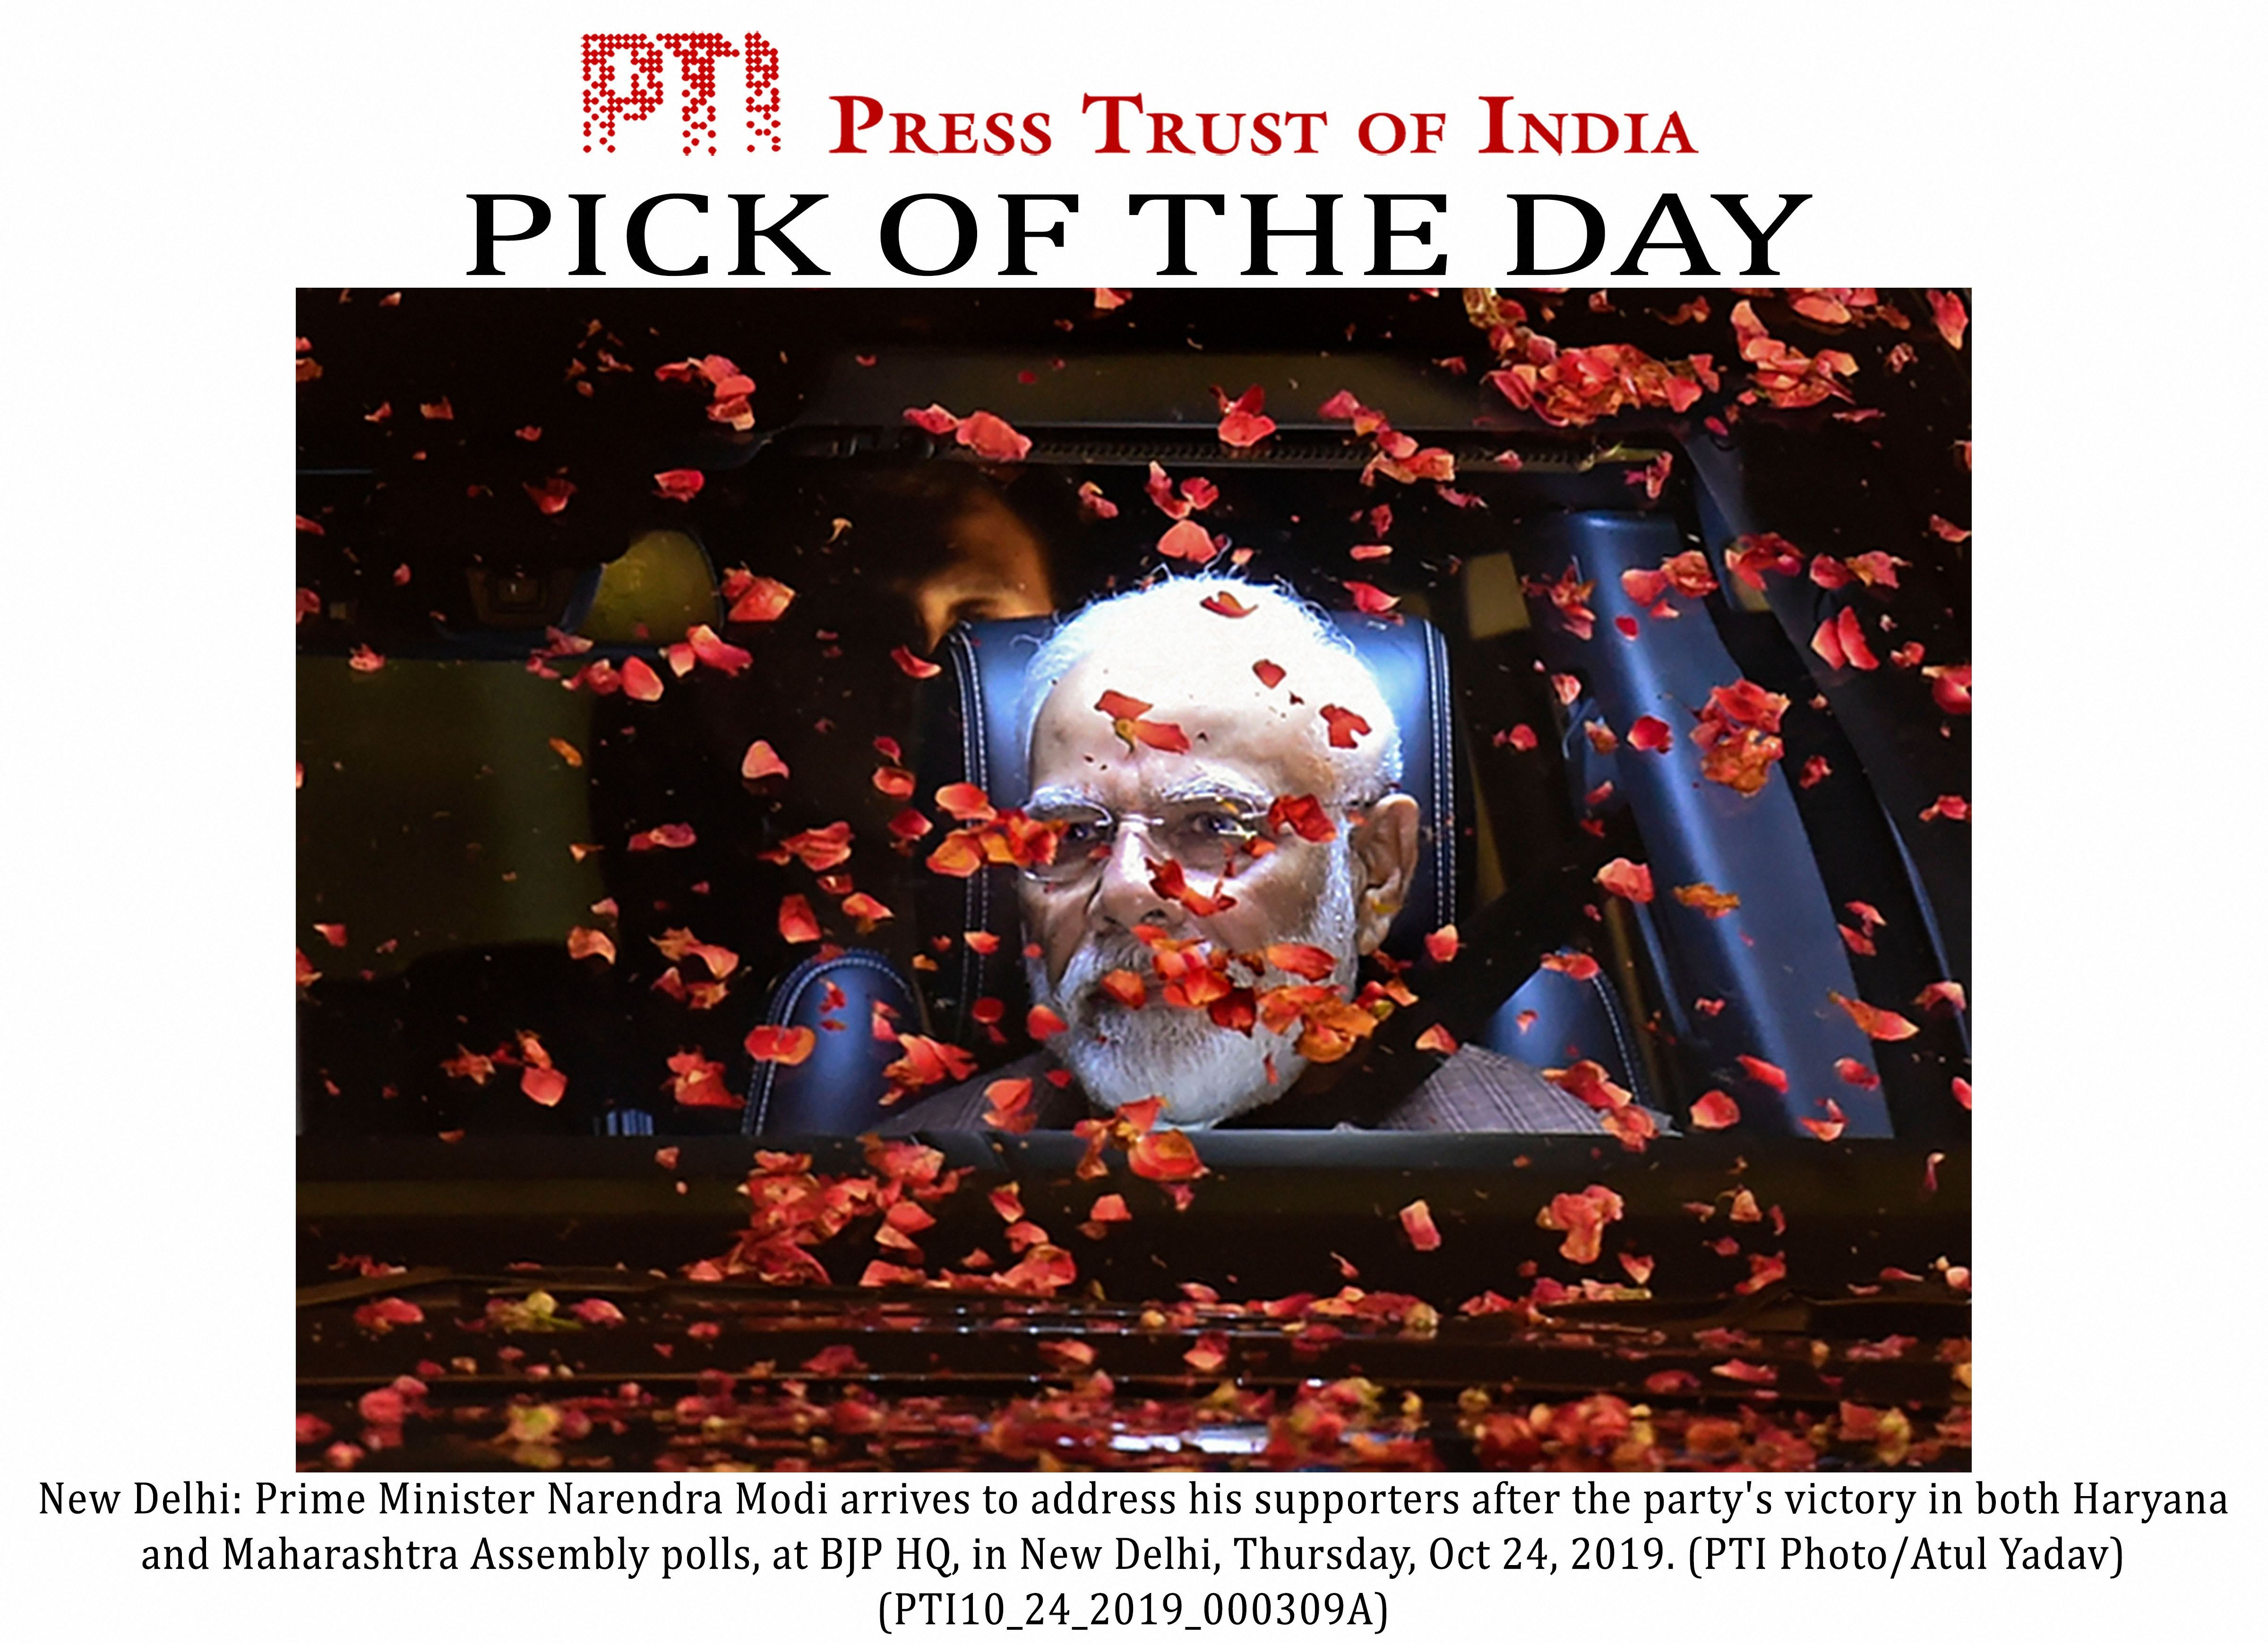 Petals are showered as Prime Minister Narendra Modi arrives to address supporters at the BJP headquarters in New Delhi on October 24.